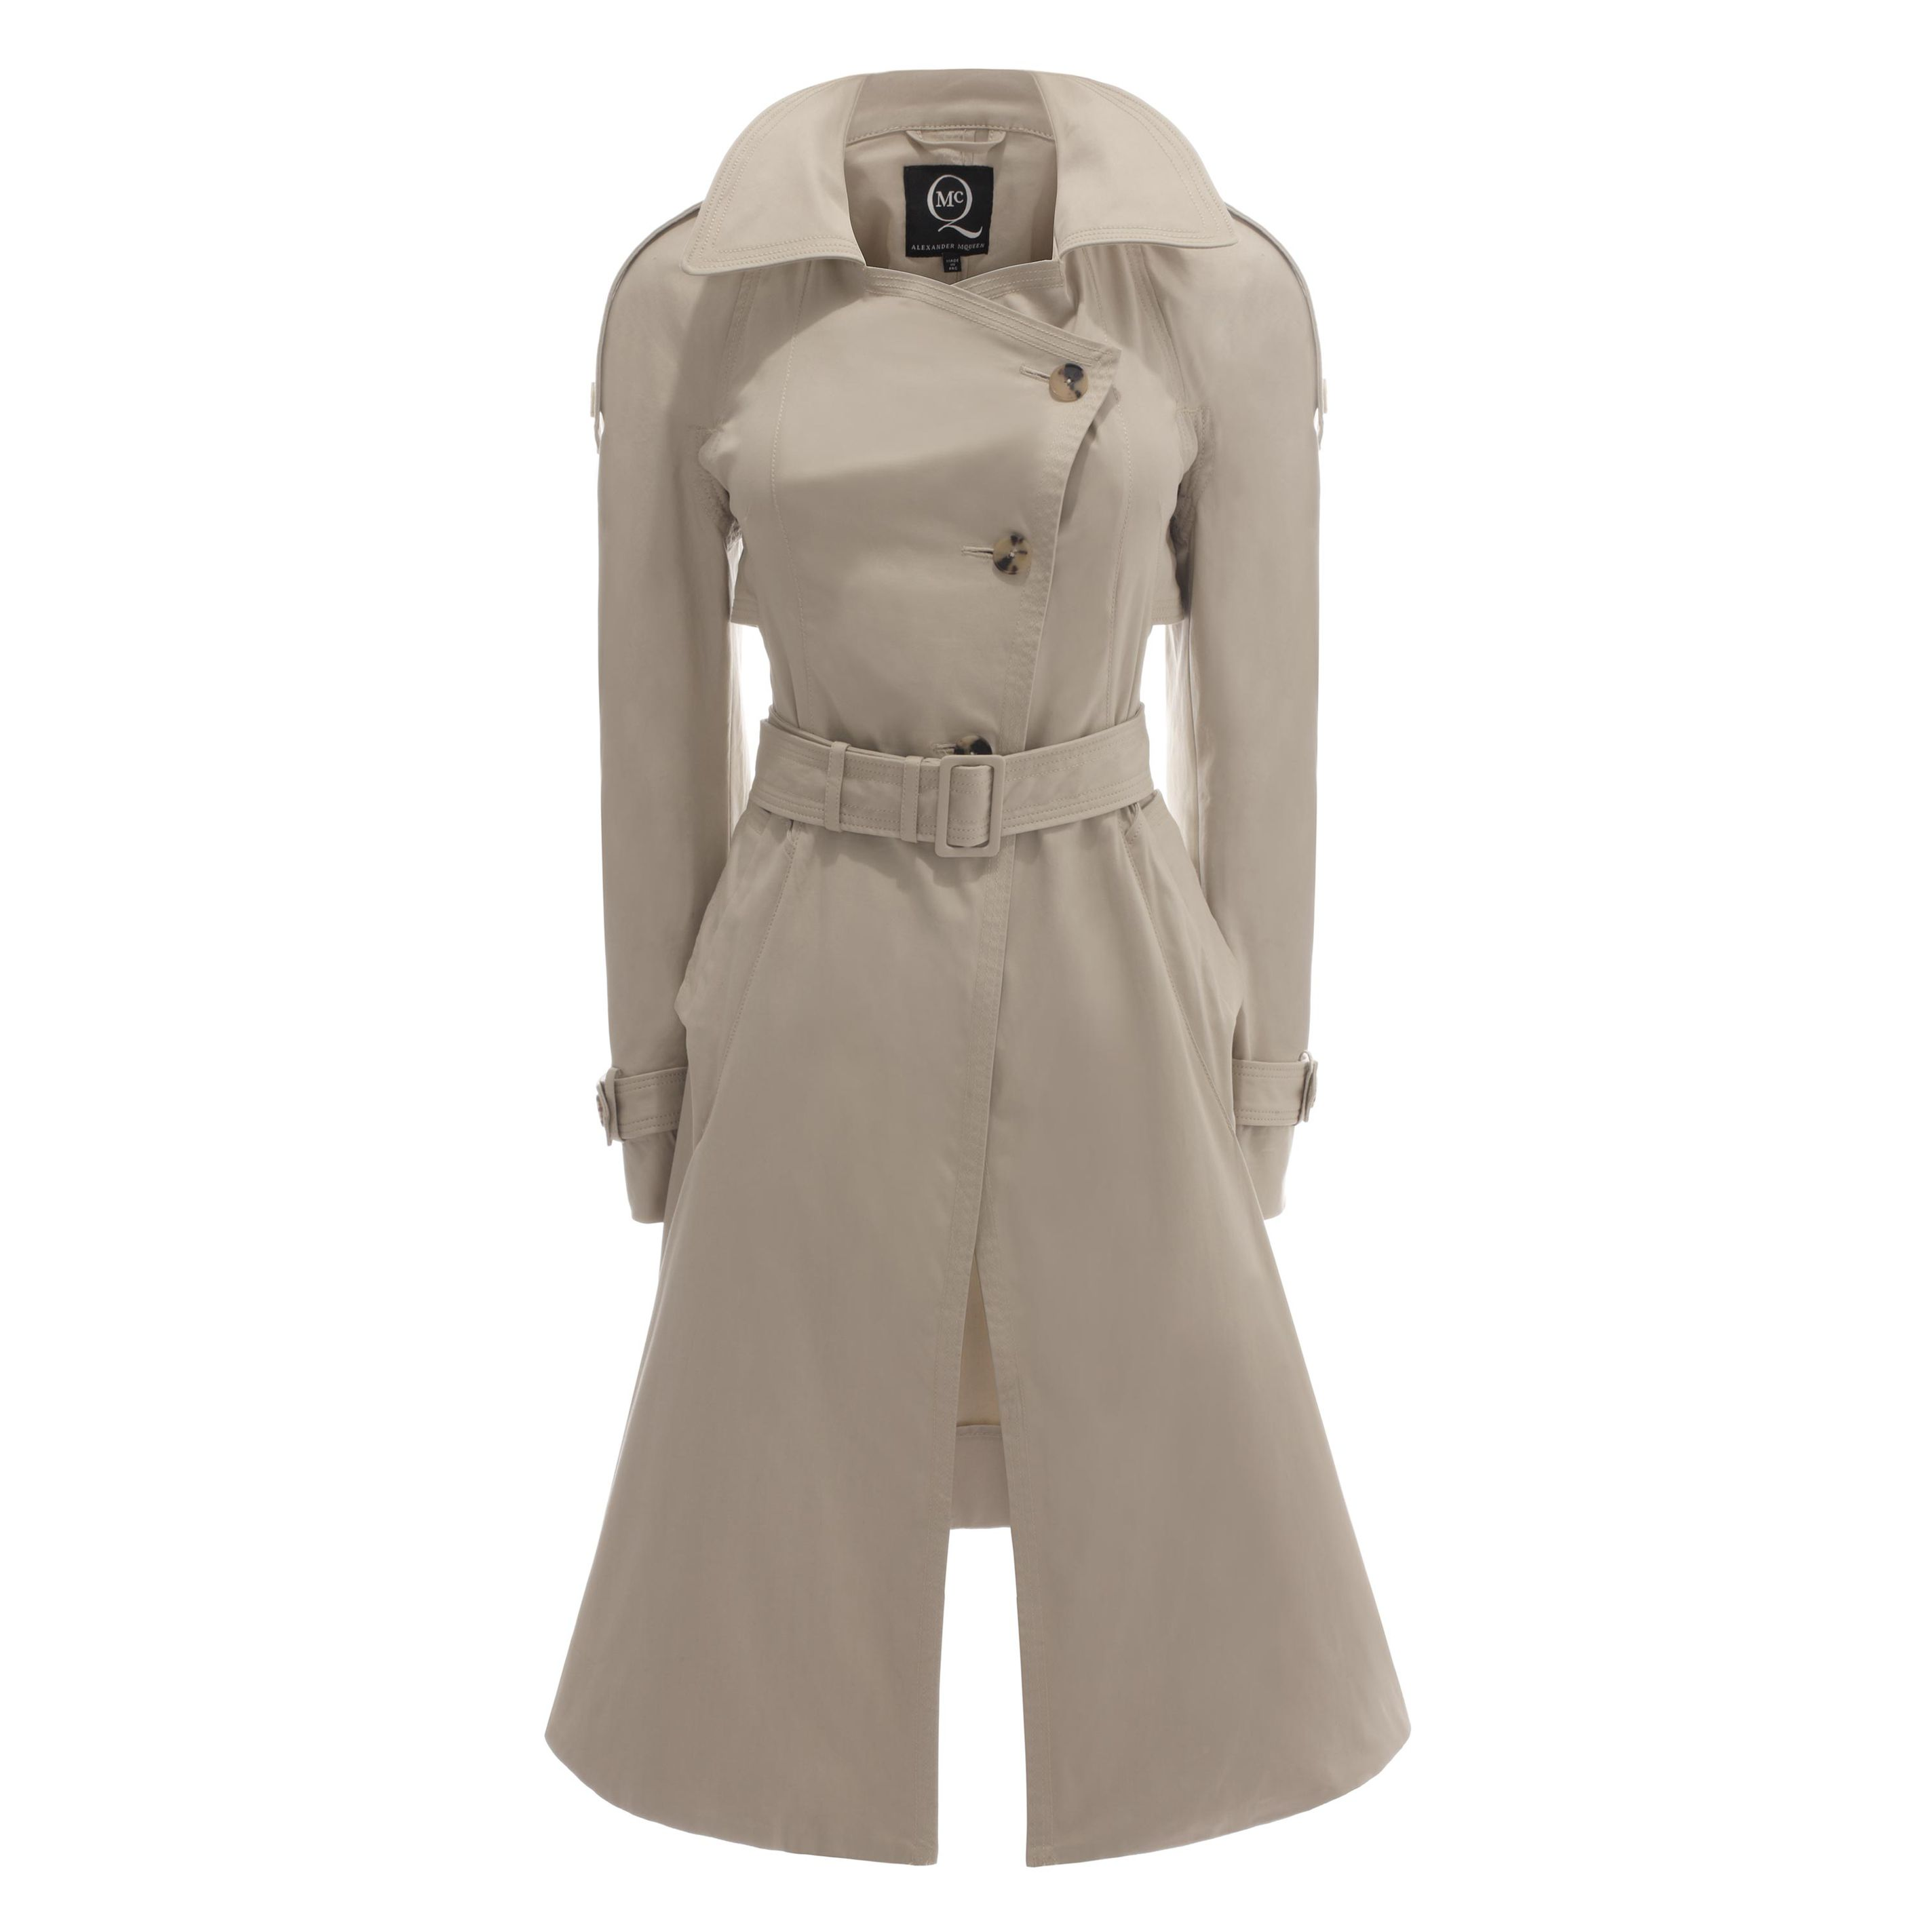 Asymmetric Trench Coat McQ | Coat | Ready To Wear